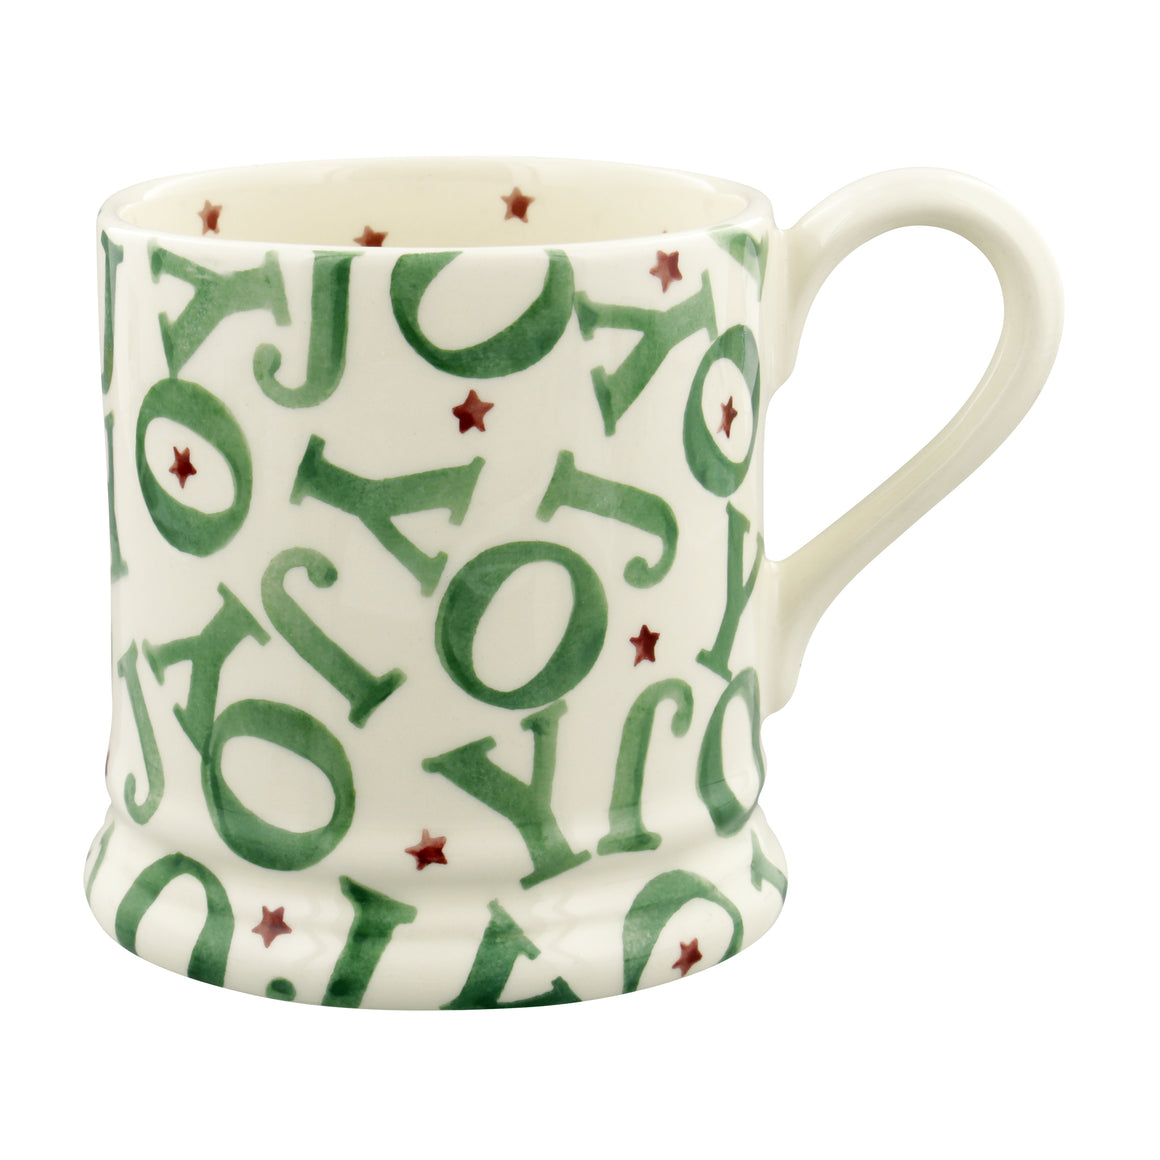 Emma Bridgewater JOY Half Pint Mug